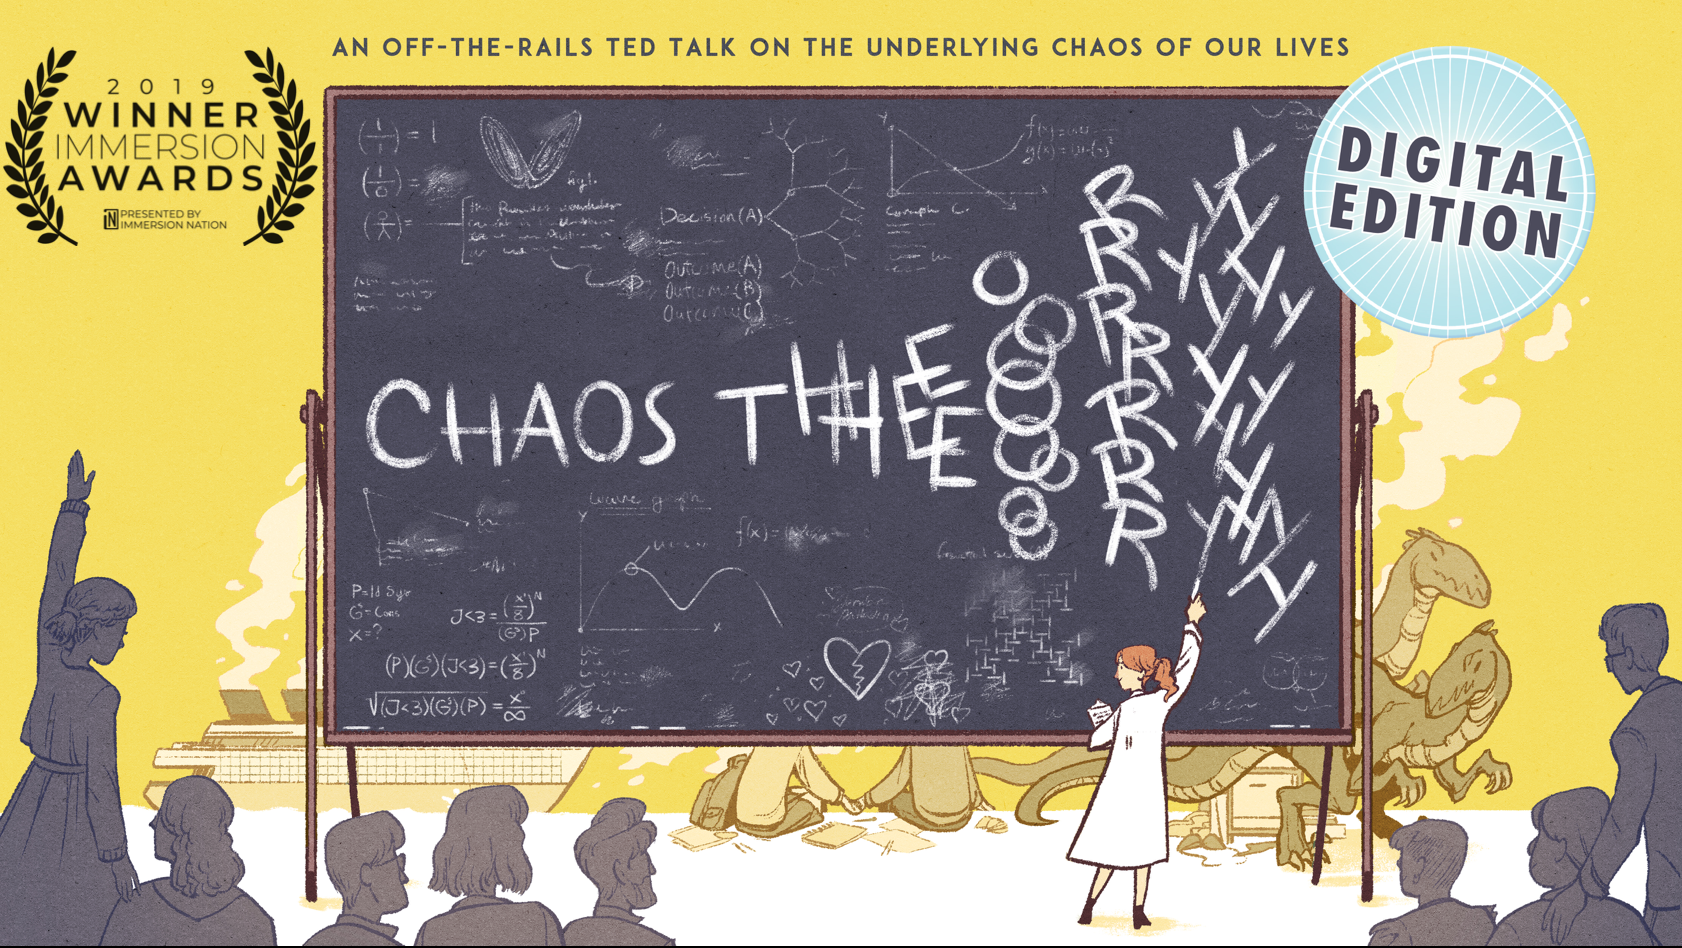 107987 image - Copy of Chaos Theory: an off-the-rails TED Talk